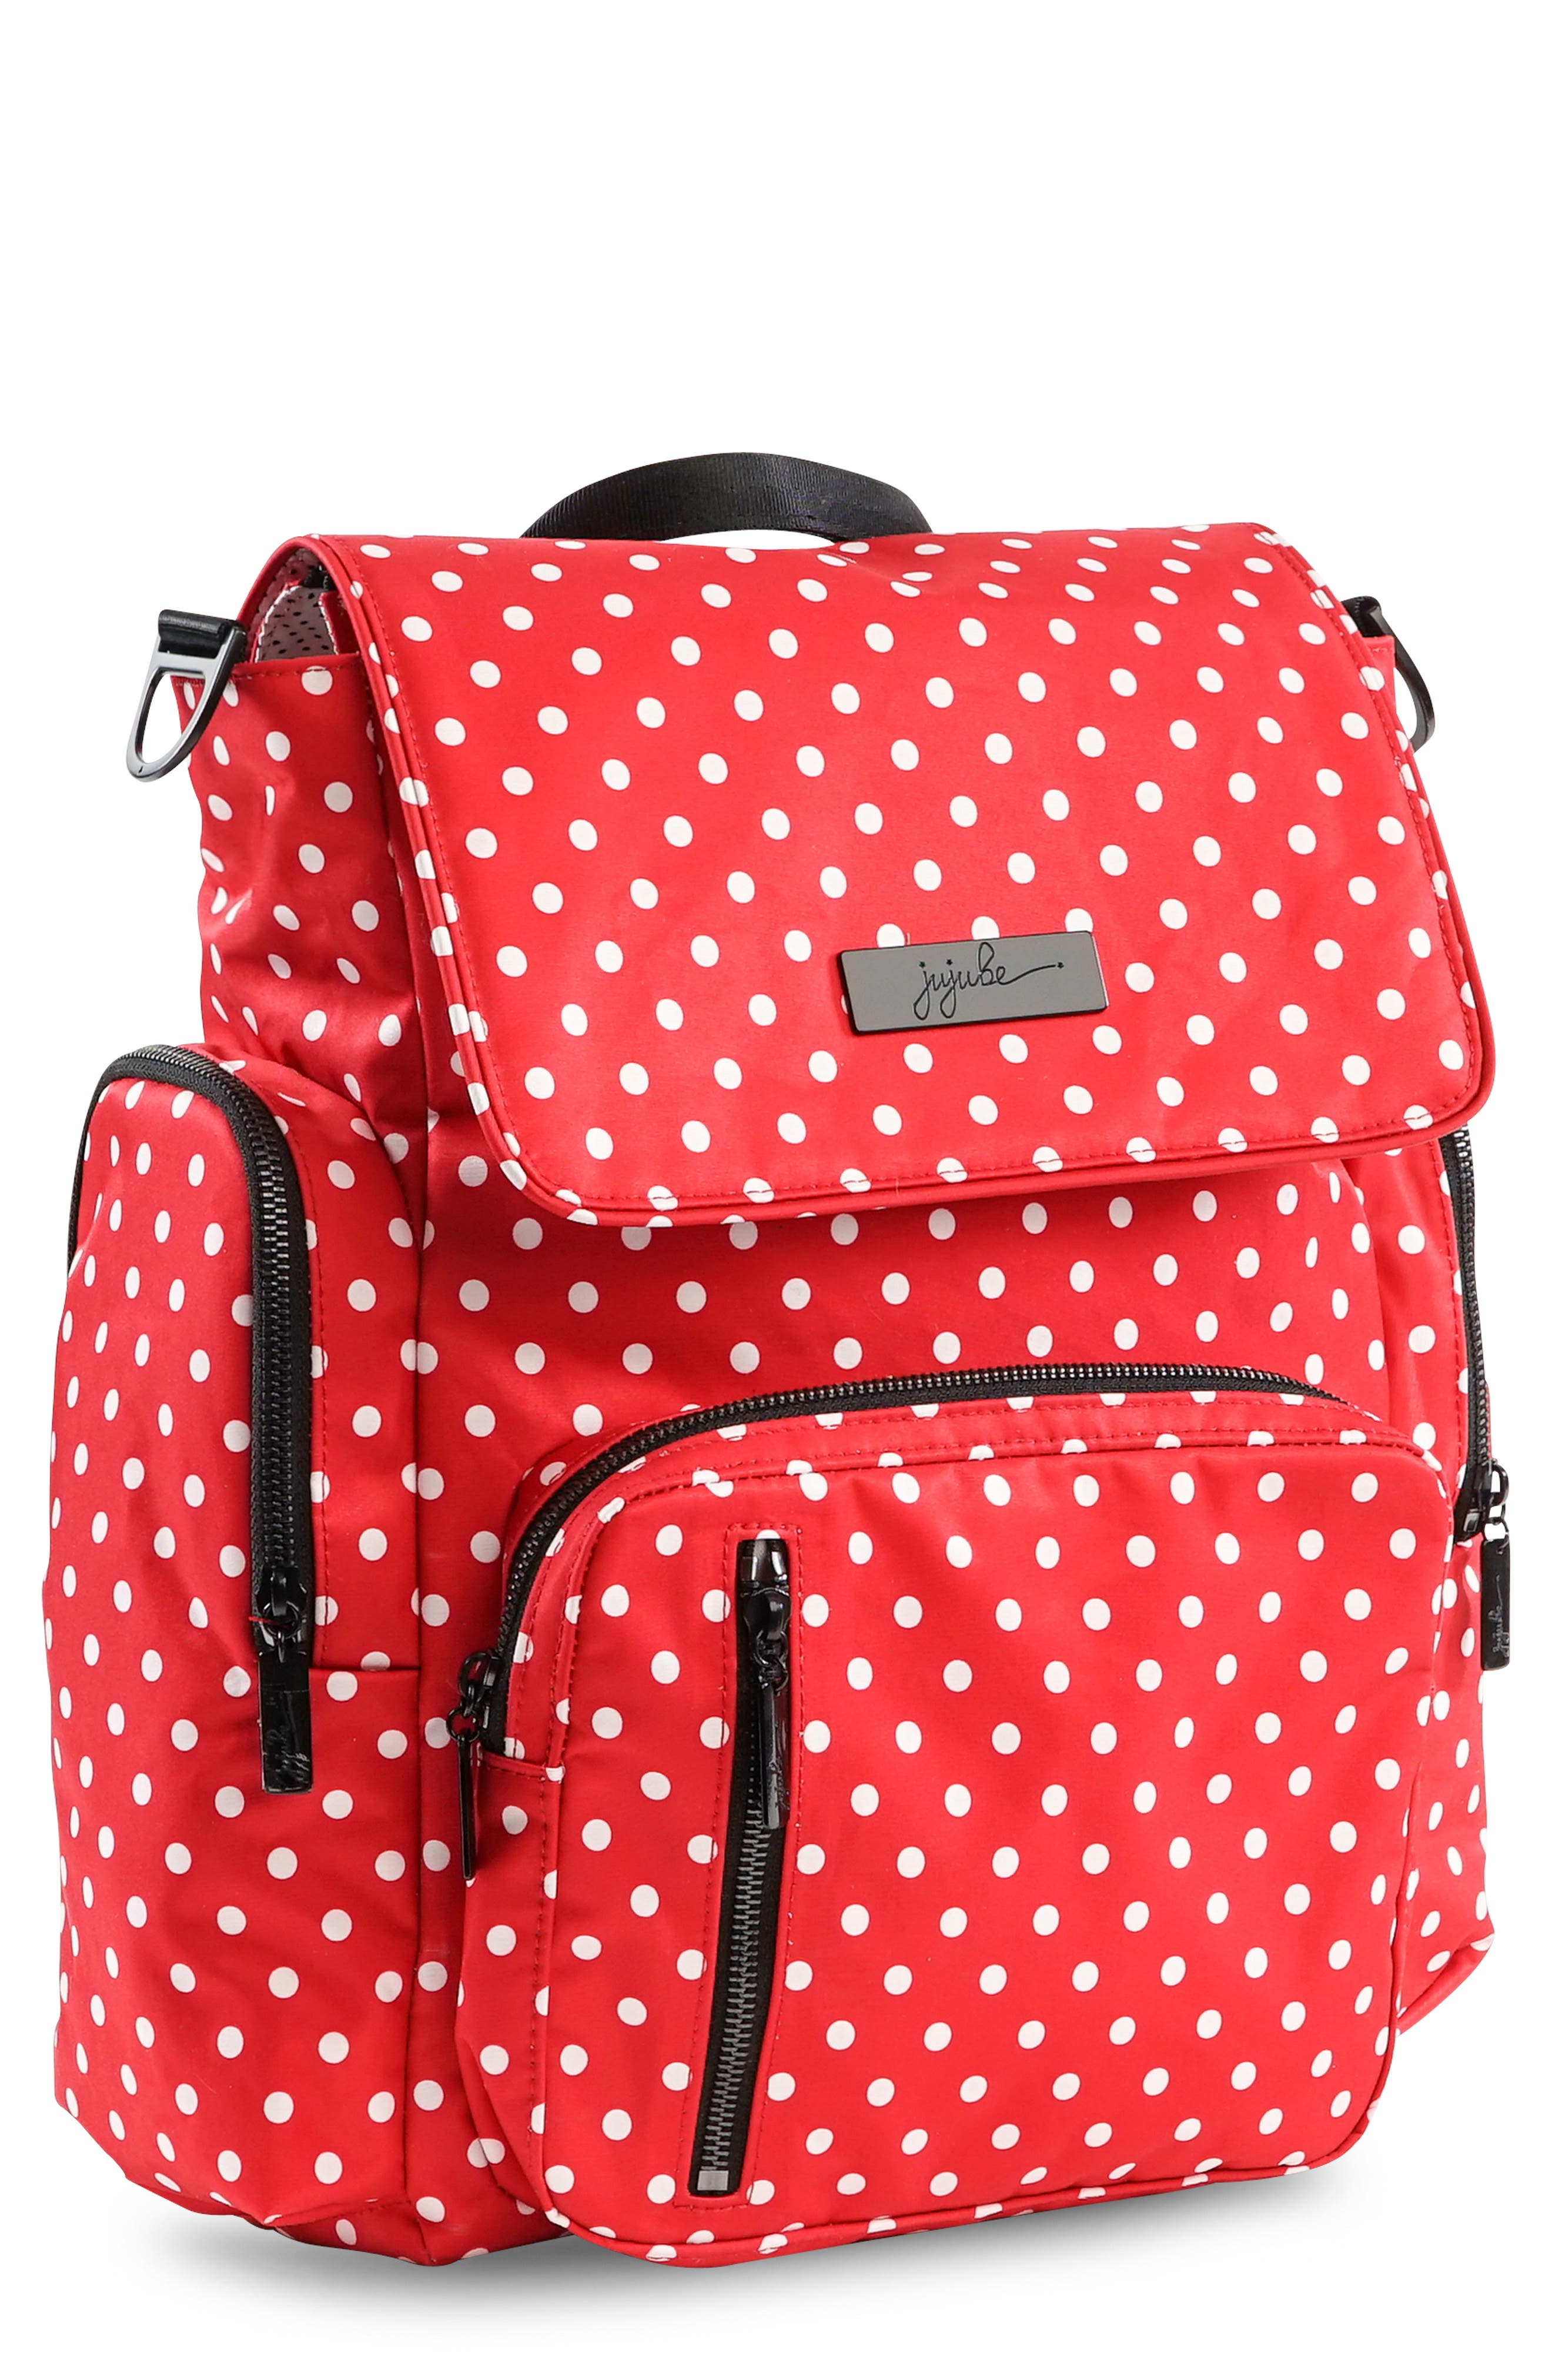 Onyx Be Sporty Diaper Backpack,                             Alternate thumbnail 5, color,                             BLACK RUBY